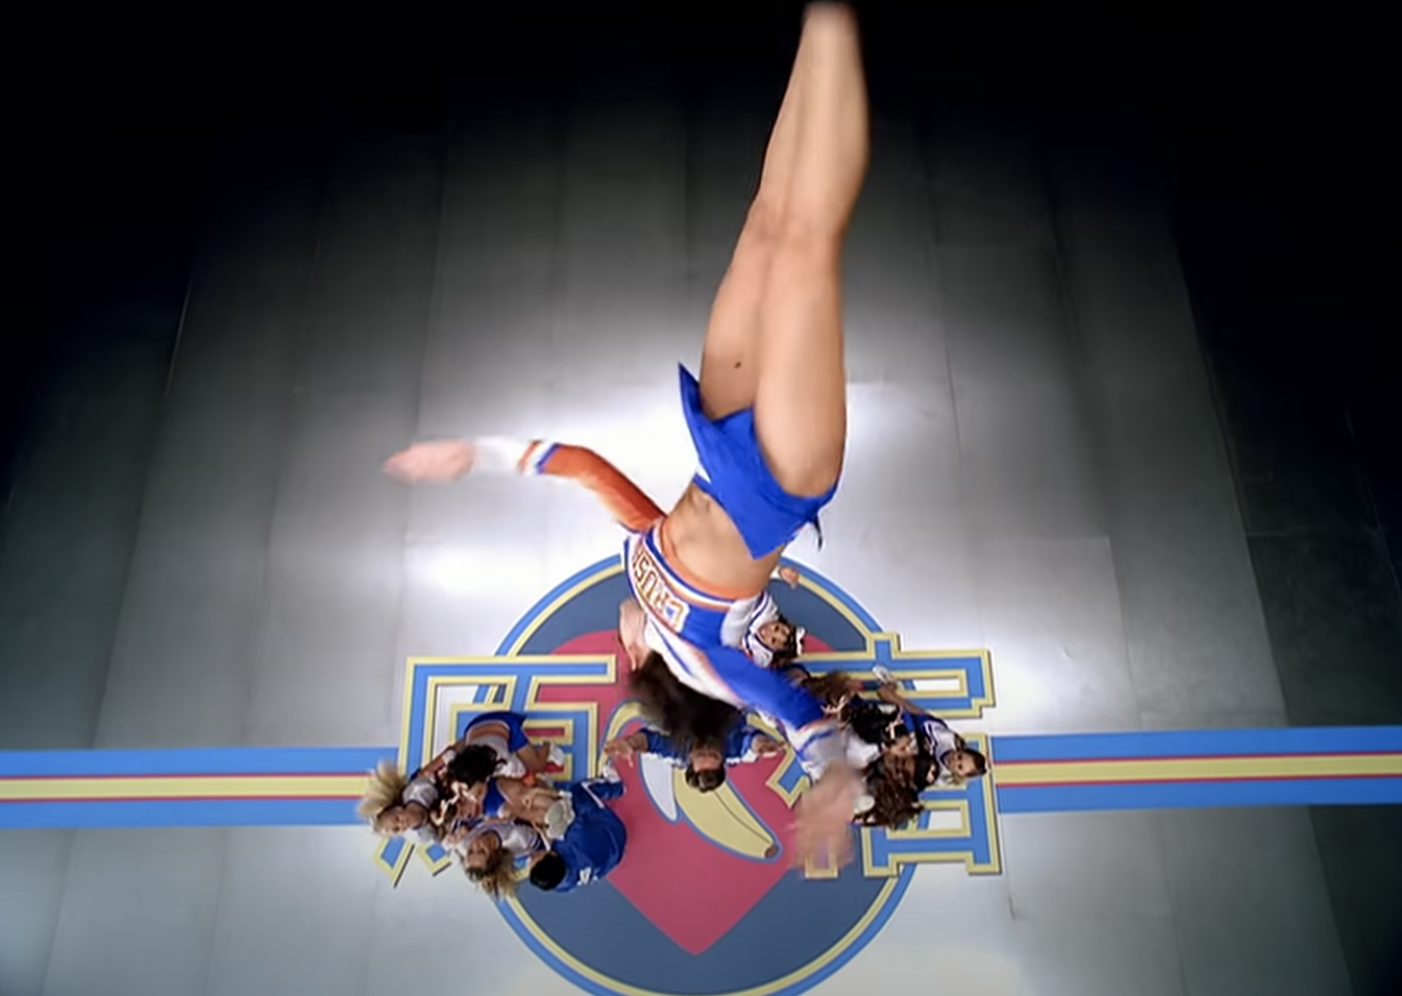 A camera angle from directly above a group of cheerleaders as one of them flips into the air toward the camera